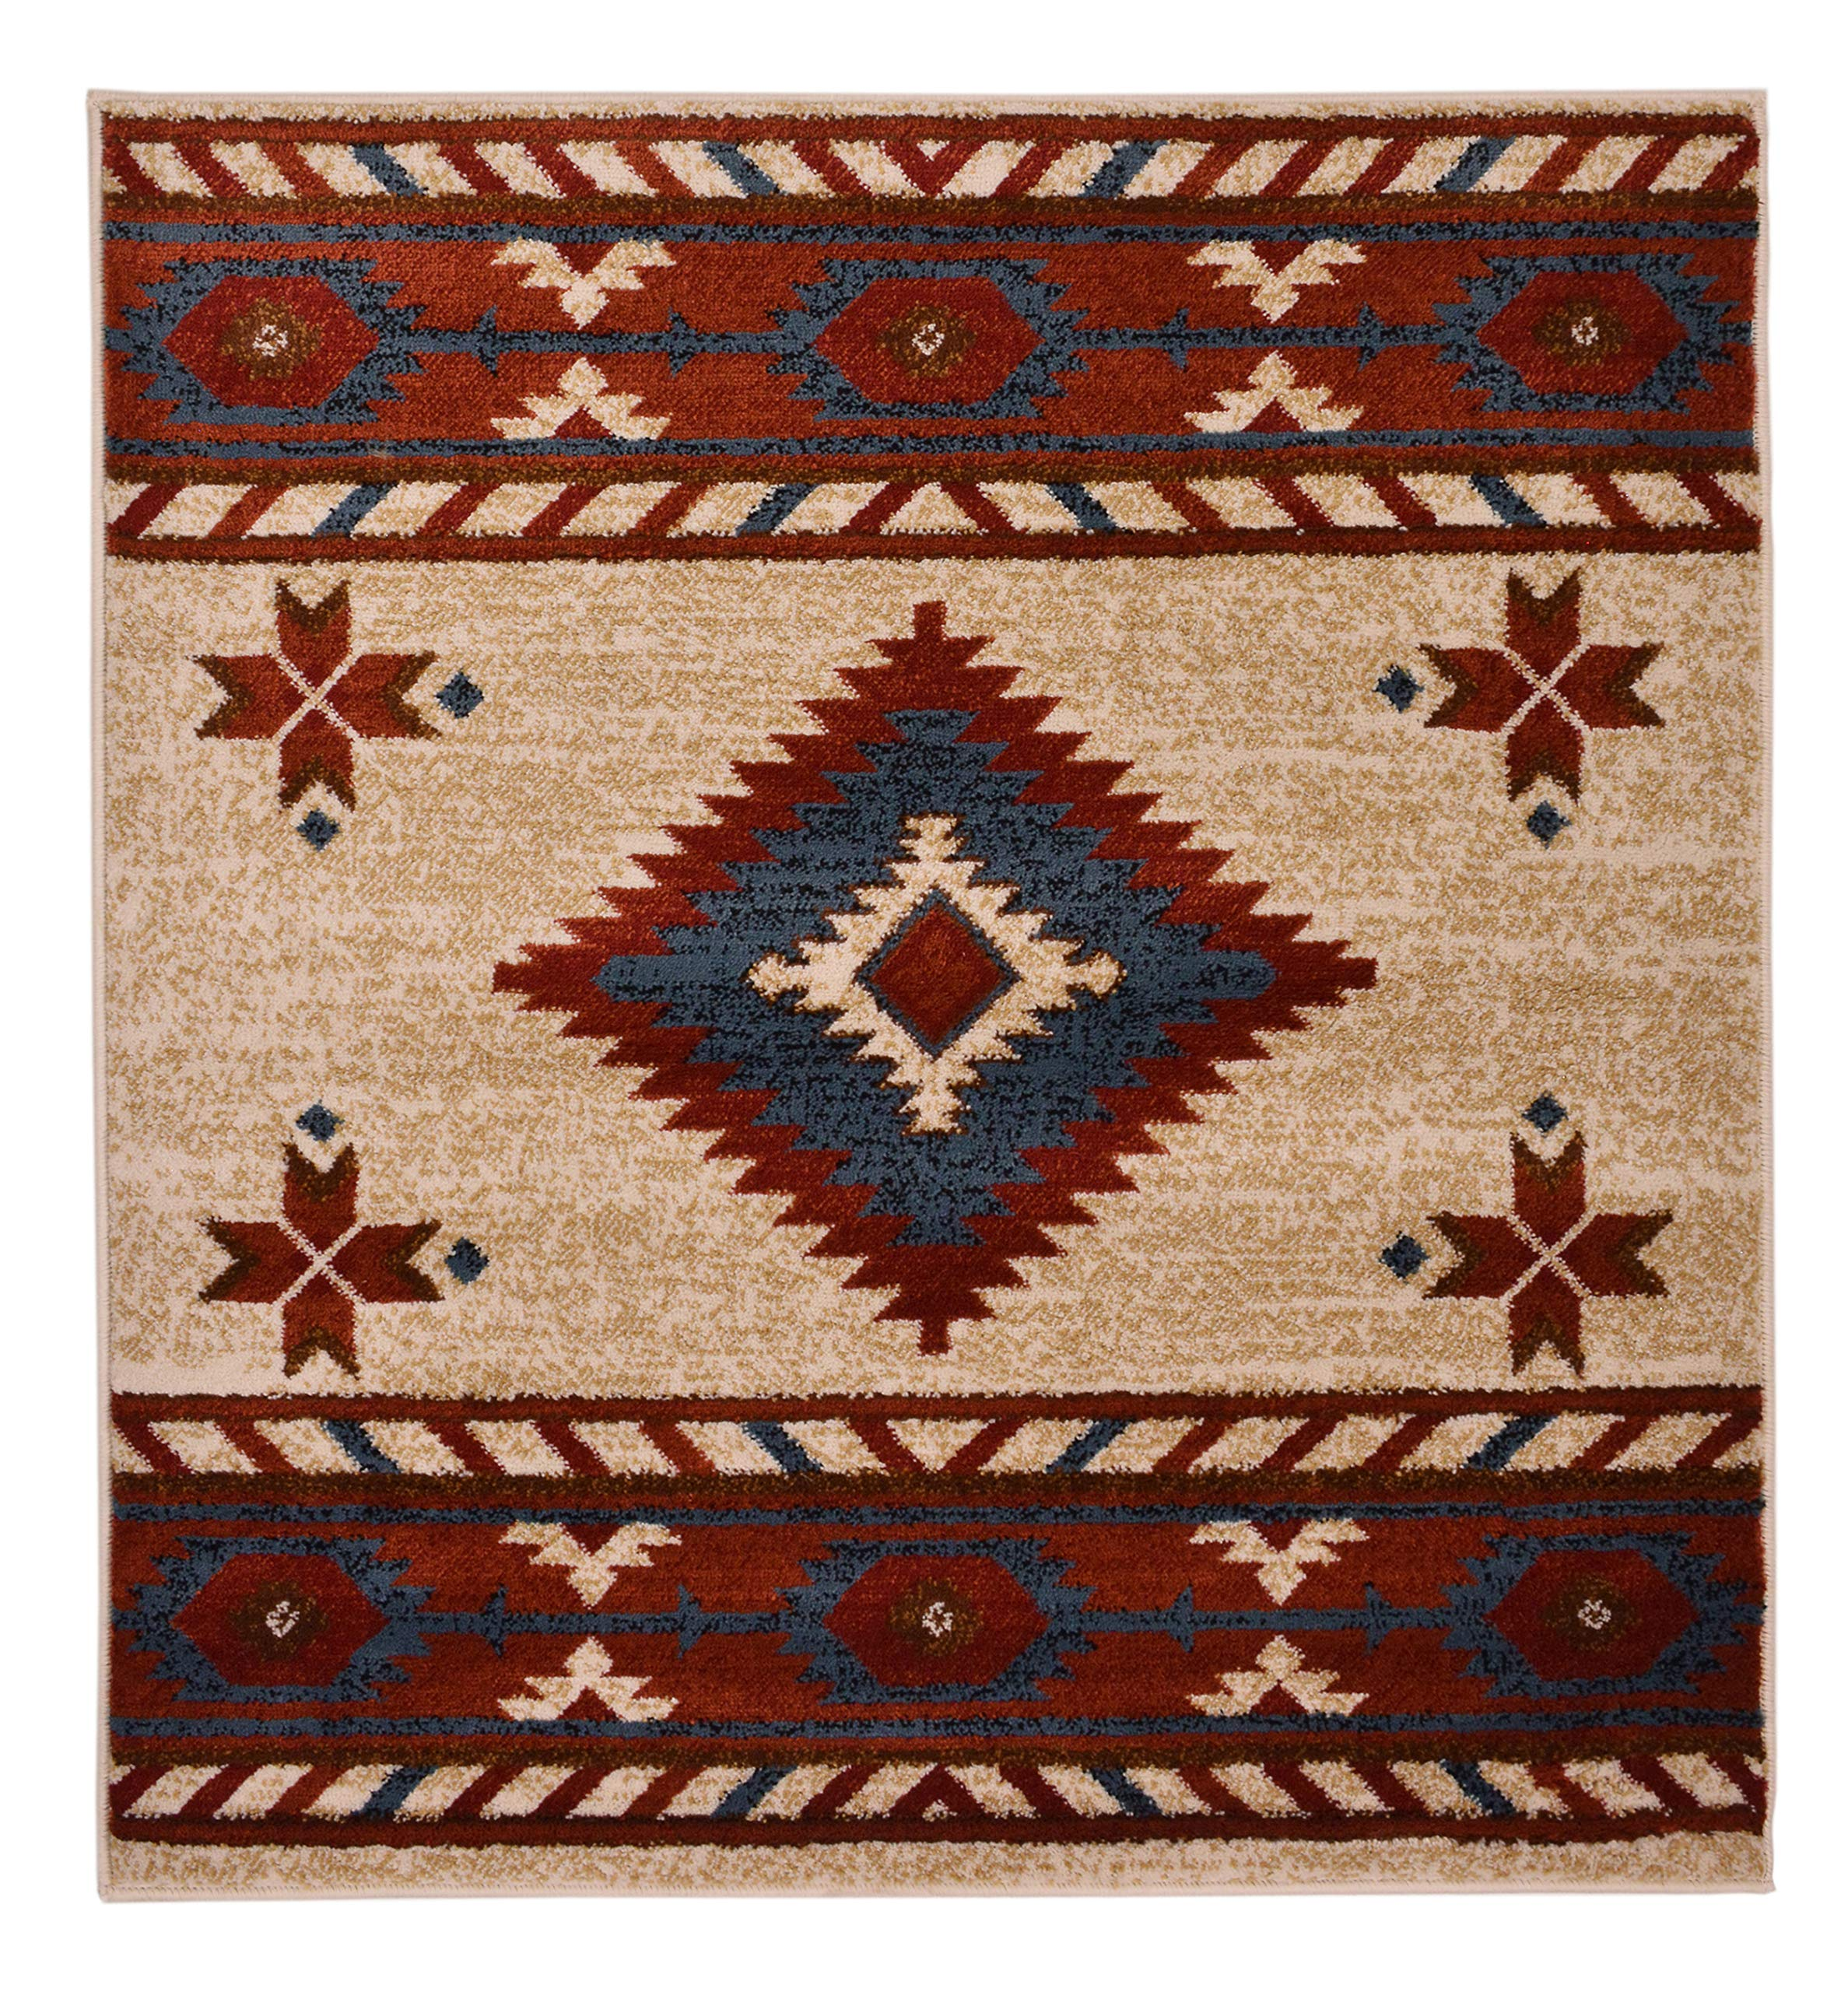 Southwest Rug Native American Style Rug Red Native American Style Rug Southwestern Rug Red Southwestern Rug Southwestern Area Rug